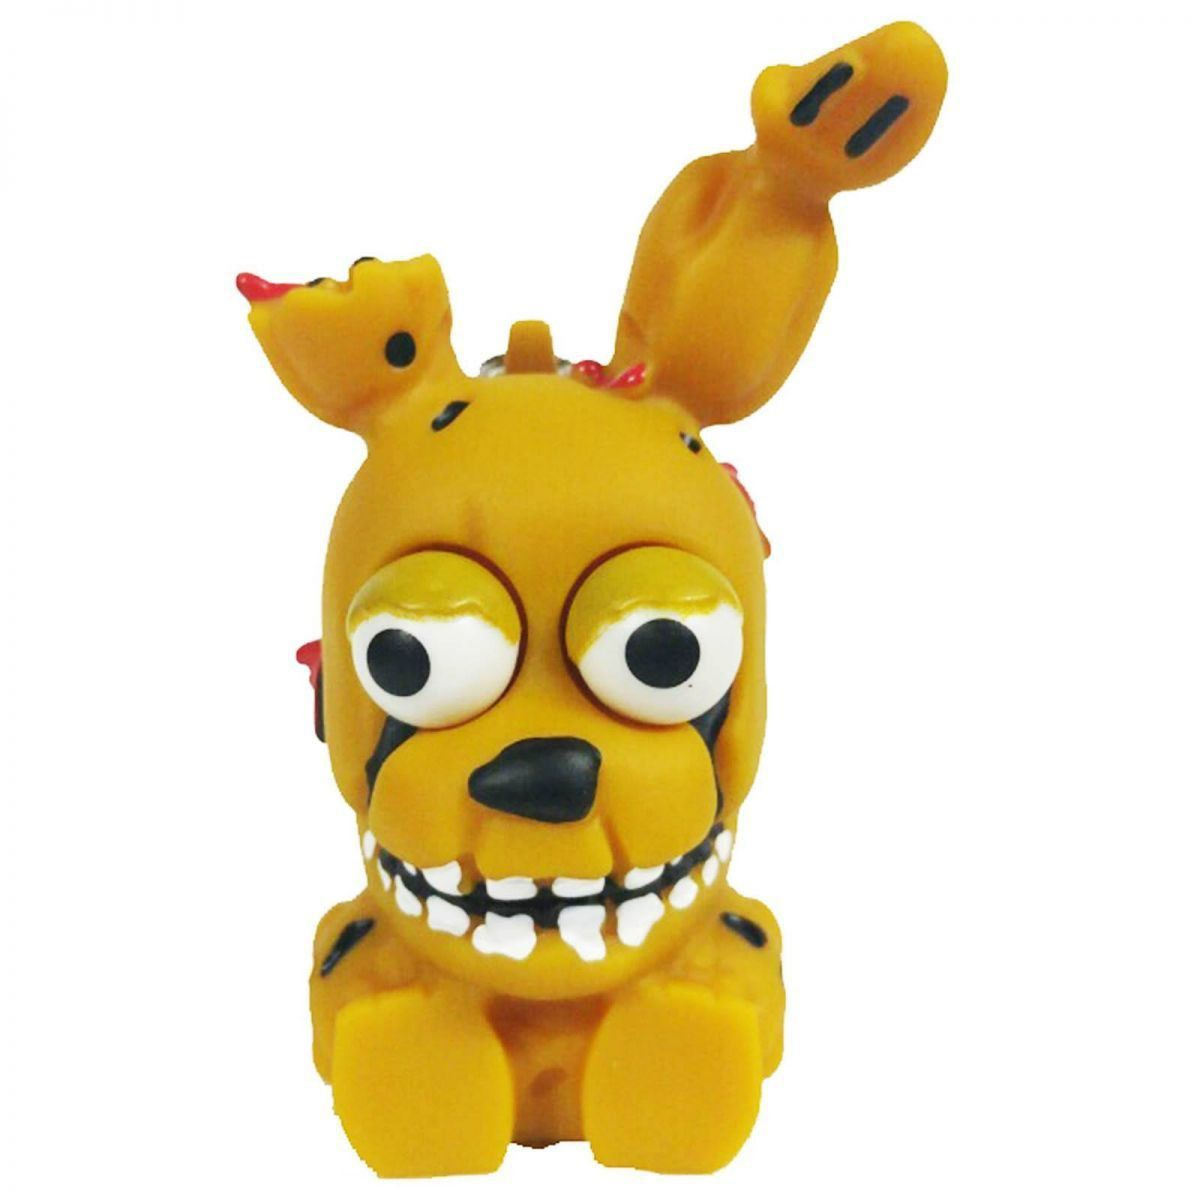 Funko Chaveiro de  Apertar: Springtrap: Five Nights At Freddy's (FNAF) - Funko